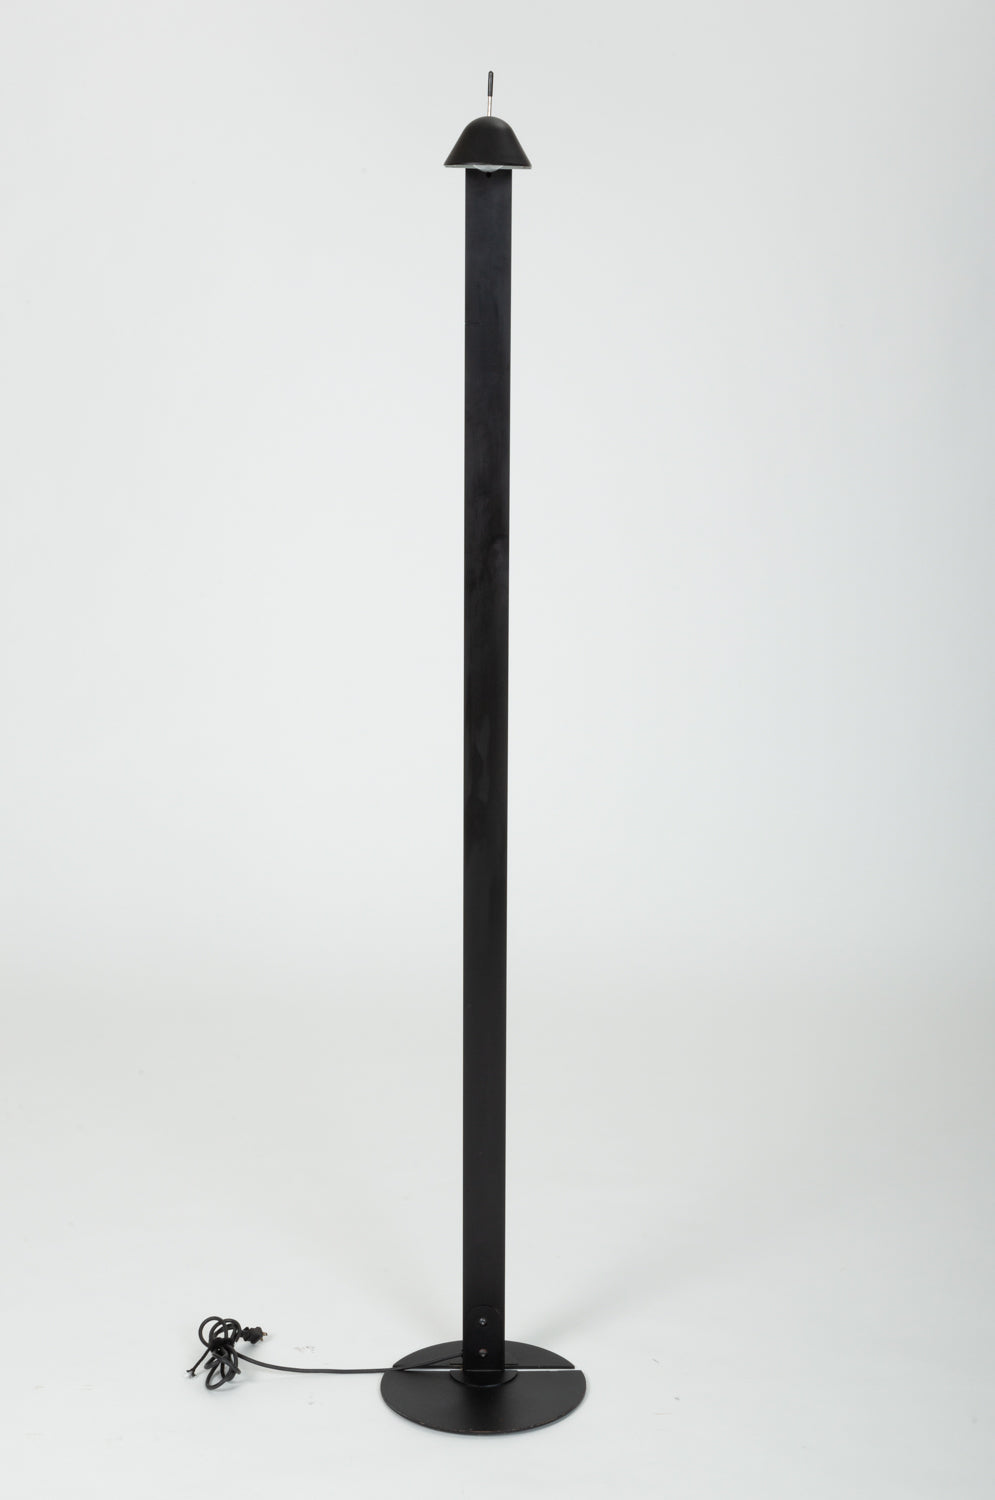 Adjustable Floor Lamp by Ron Rezek